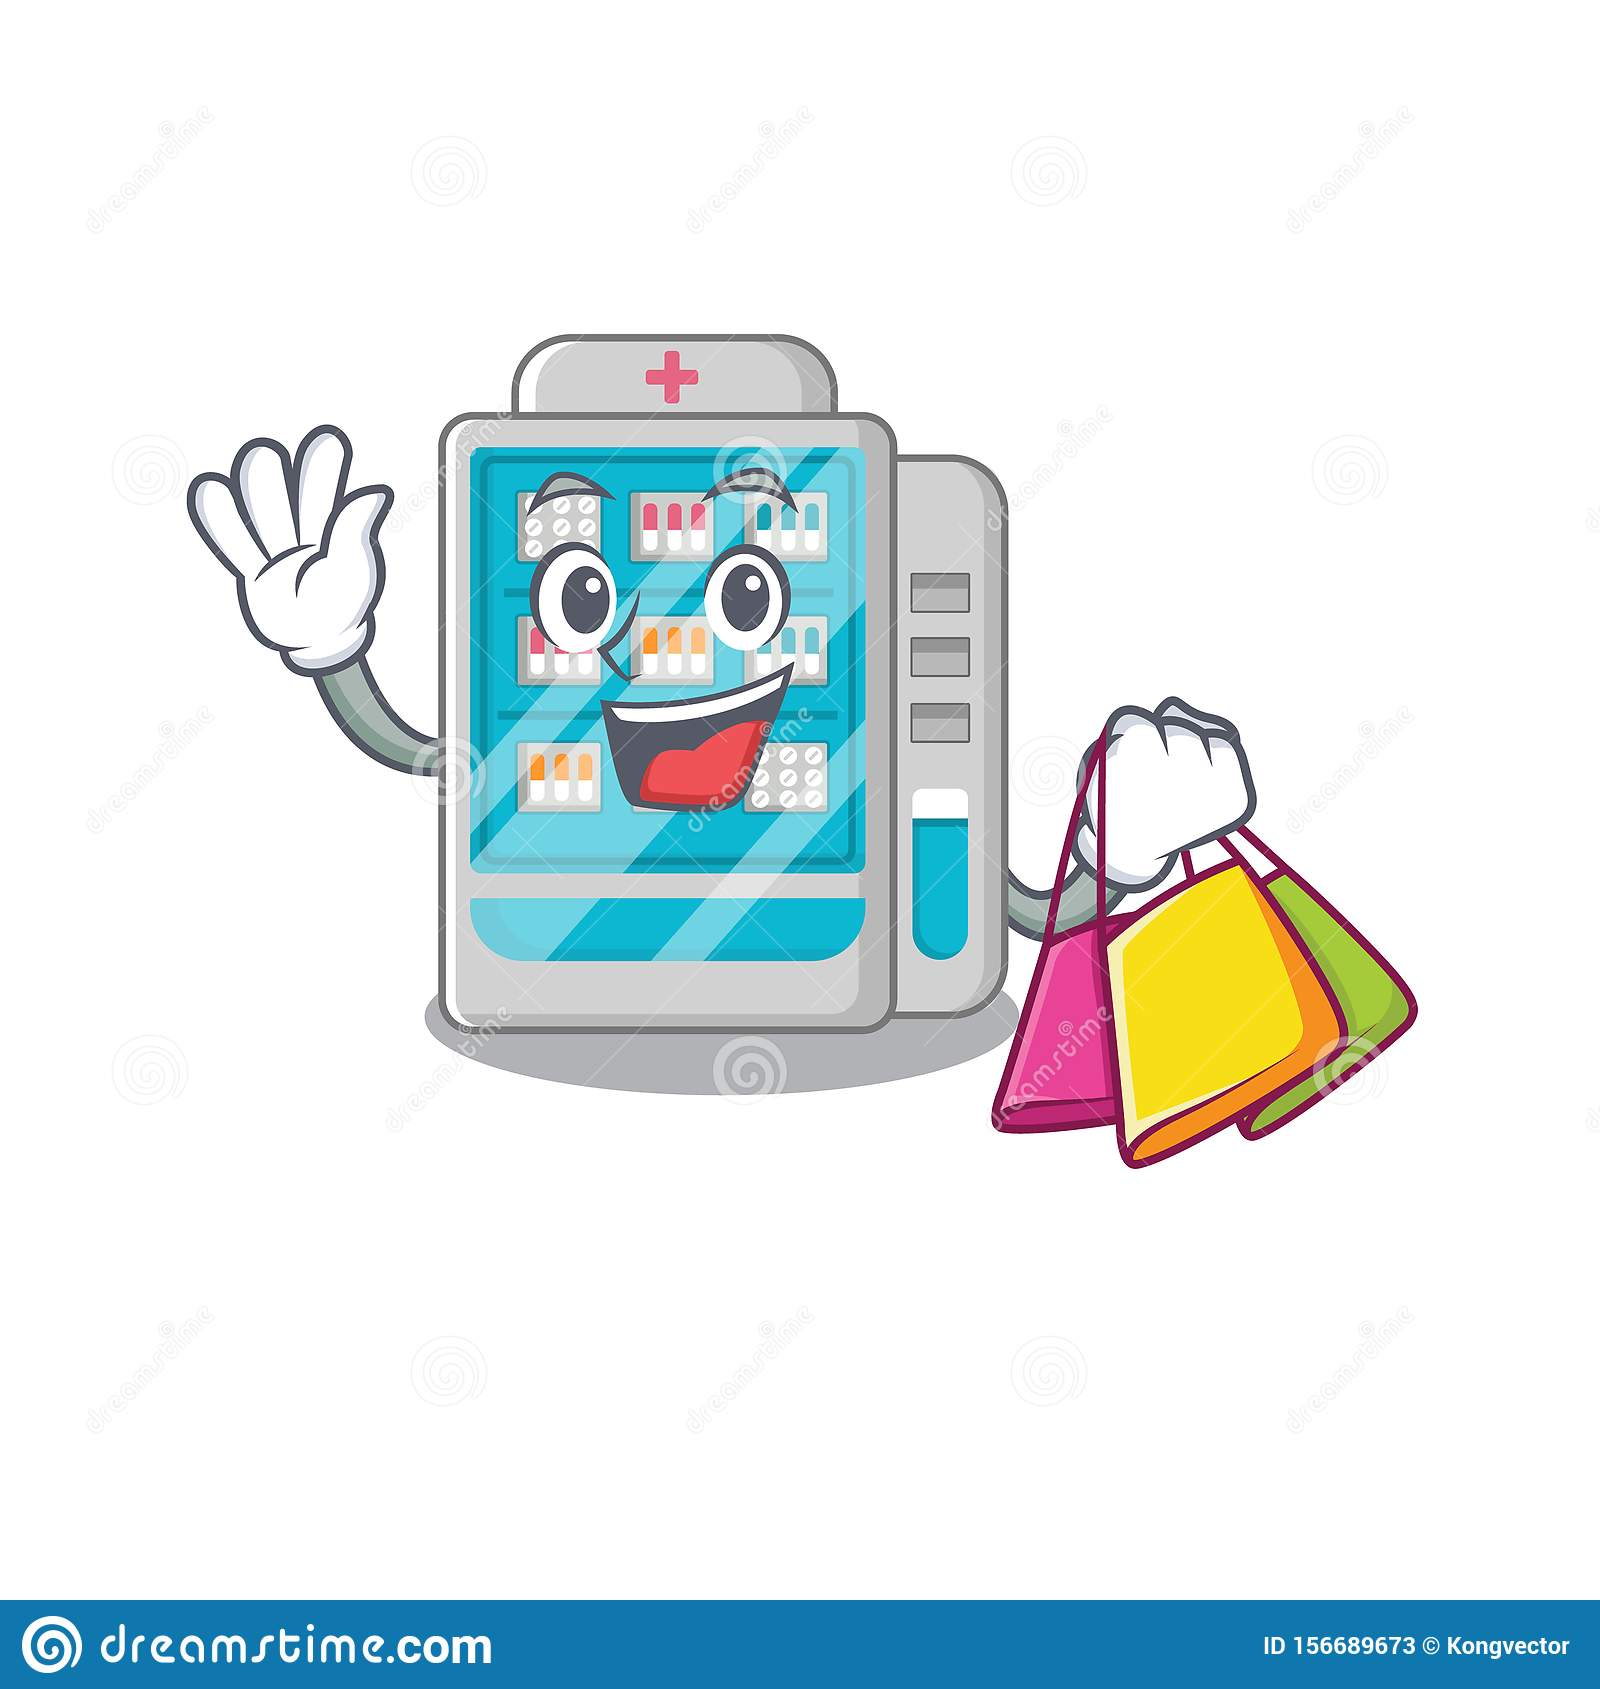 Shopping medicines vending machine in character shape